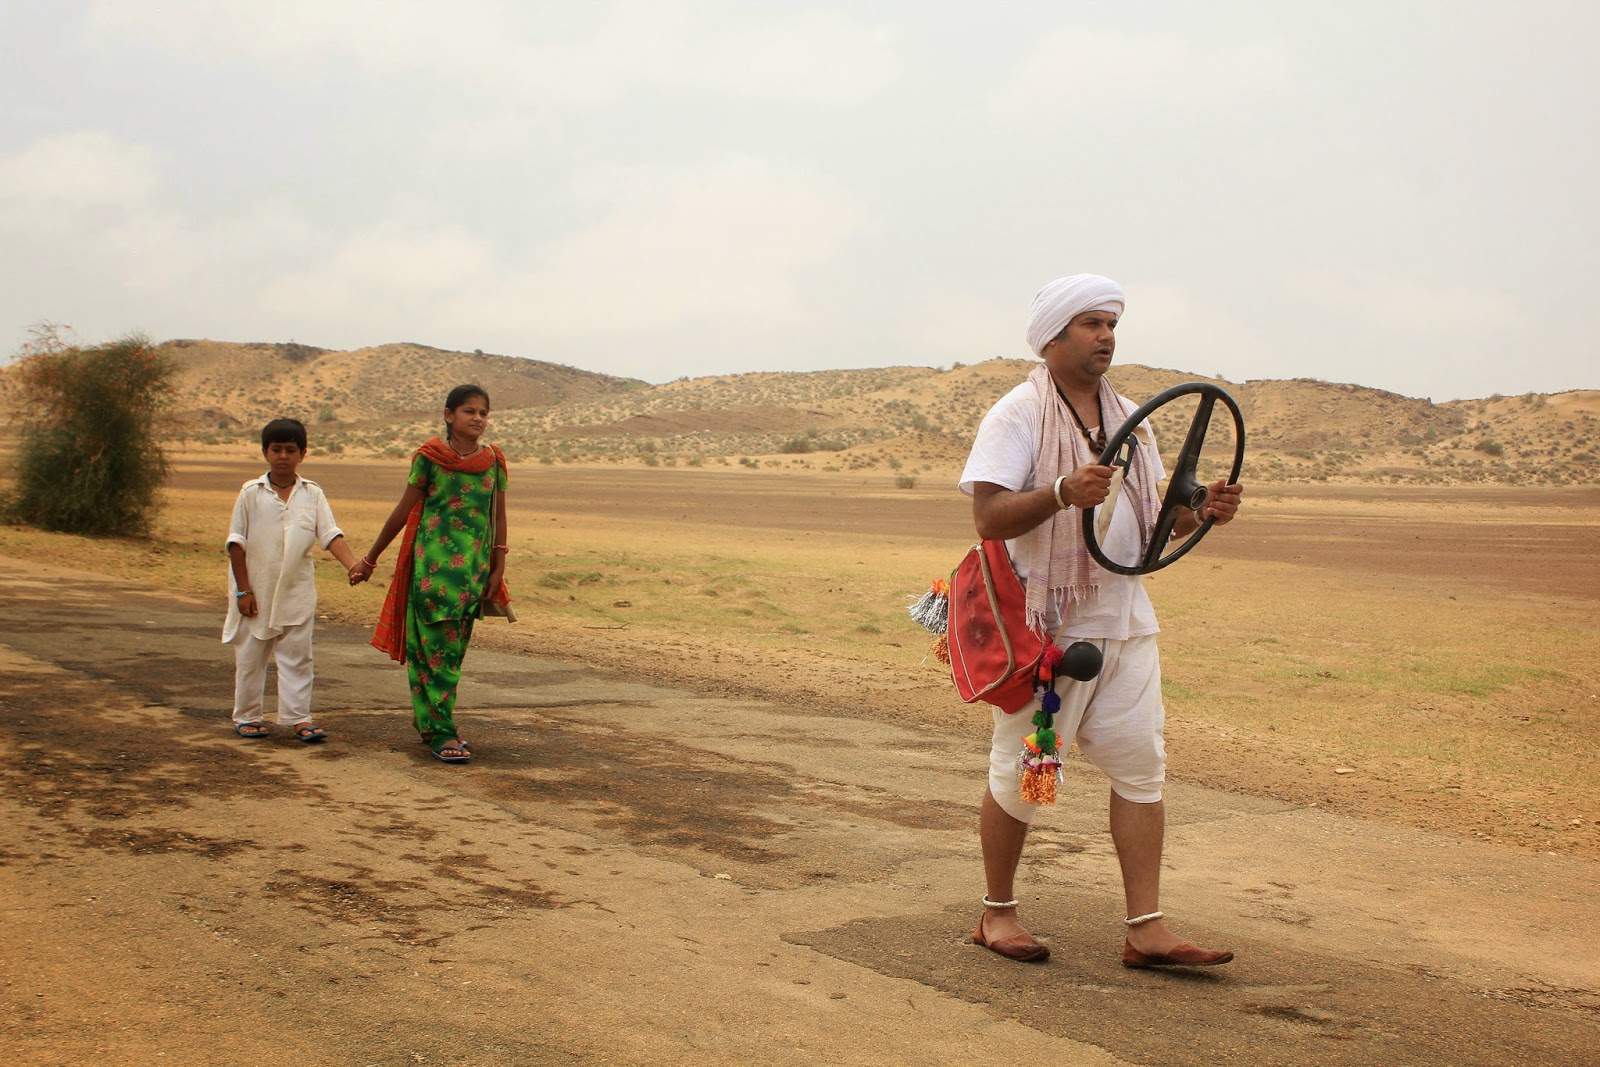 il film indiano Dhanak